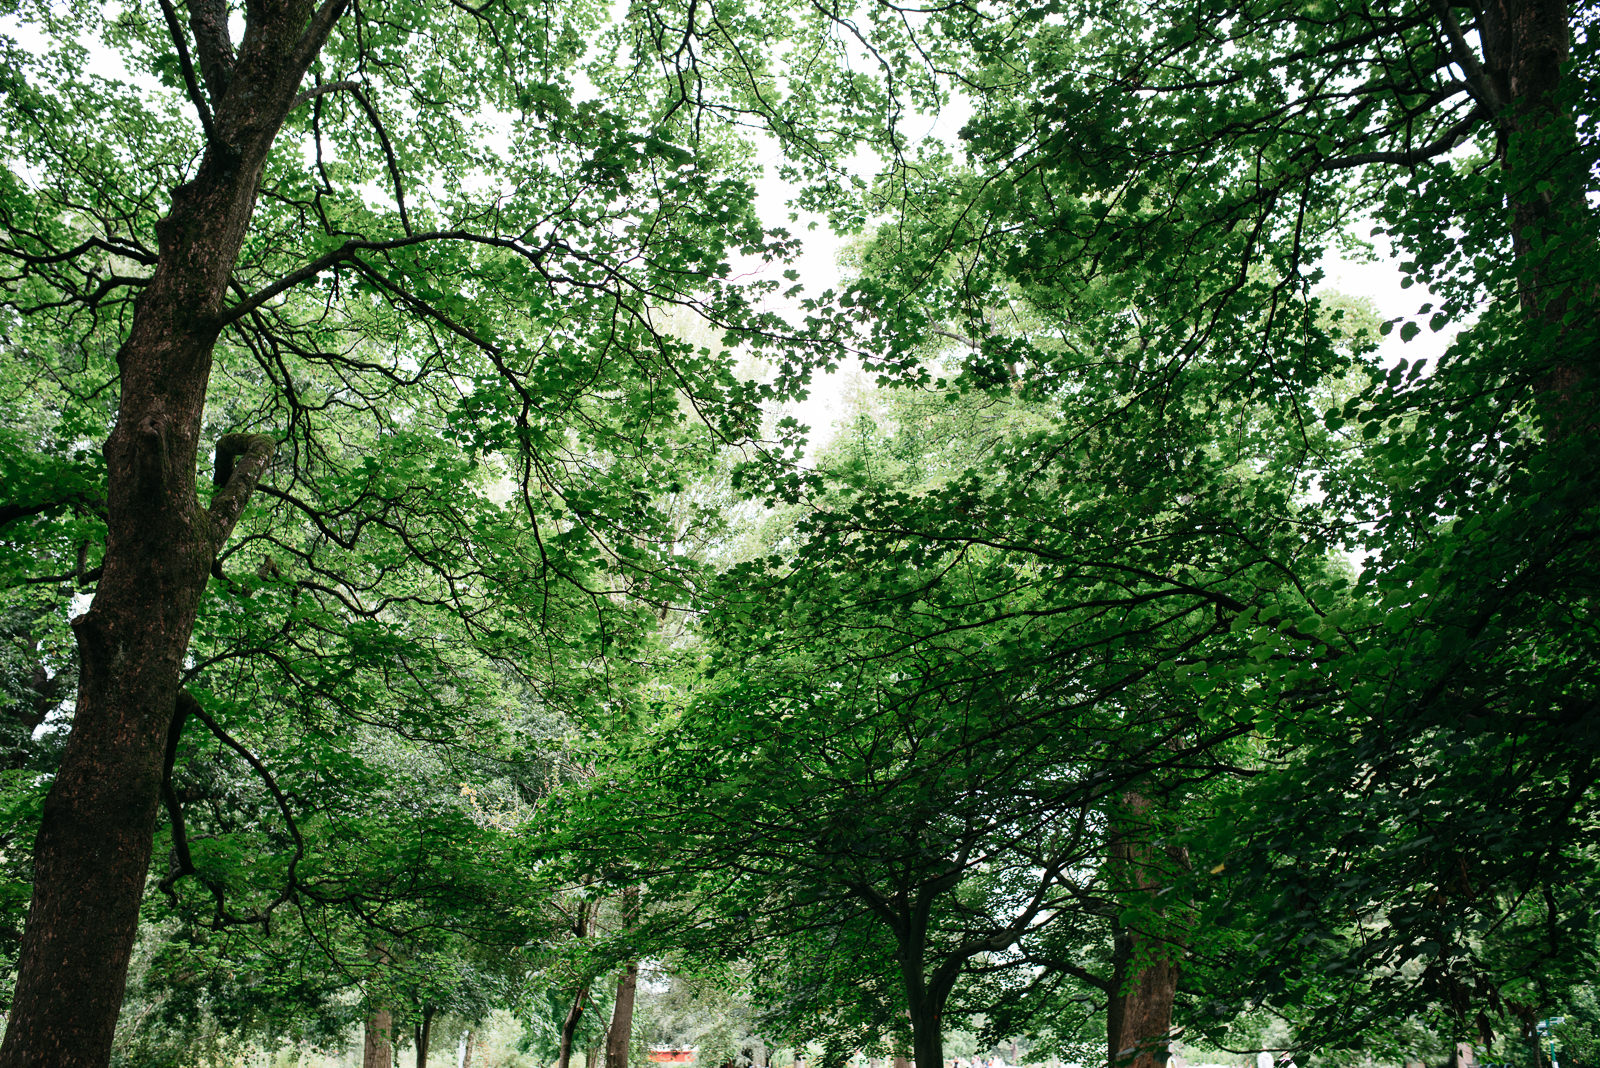 Lush green tree canopy in Bute Park in summer